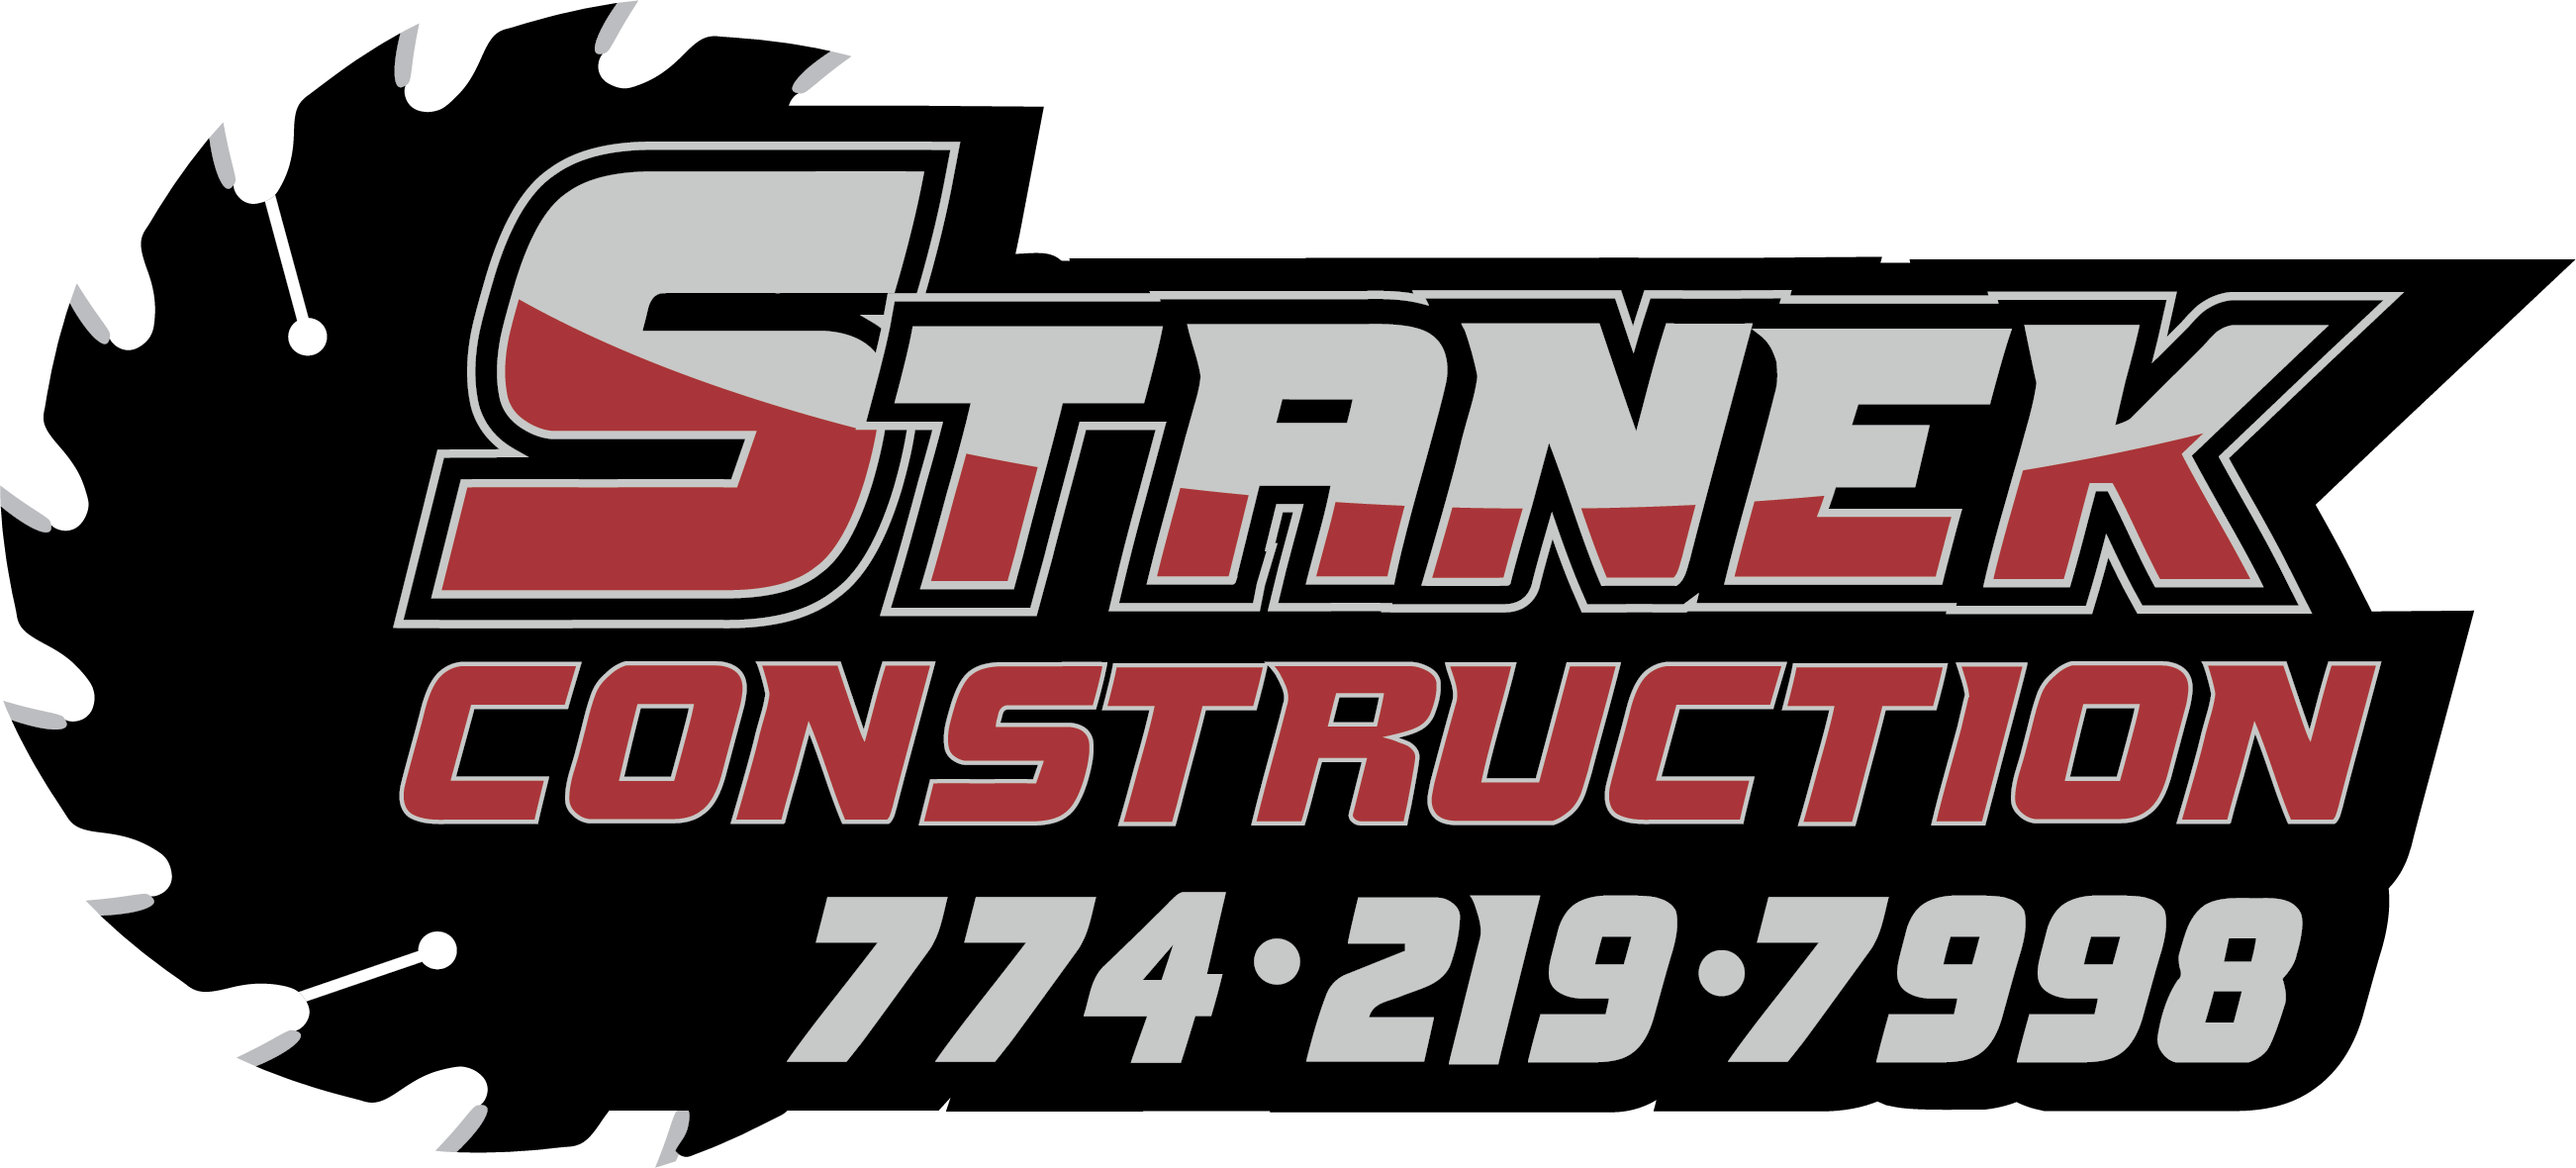 Stanek Construction Logo